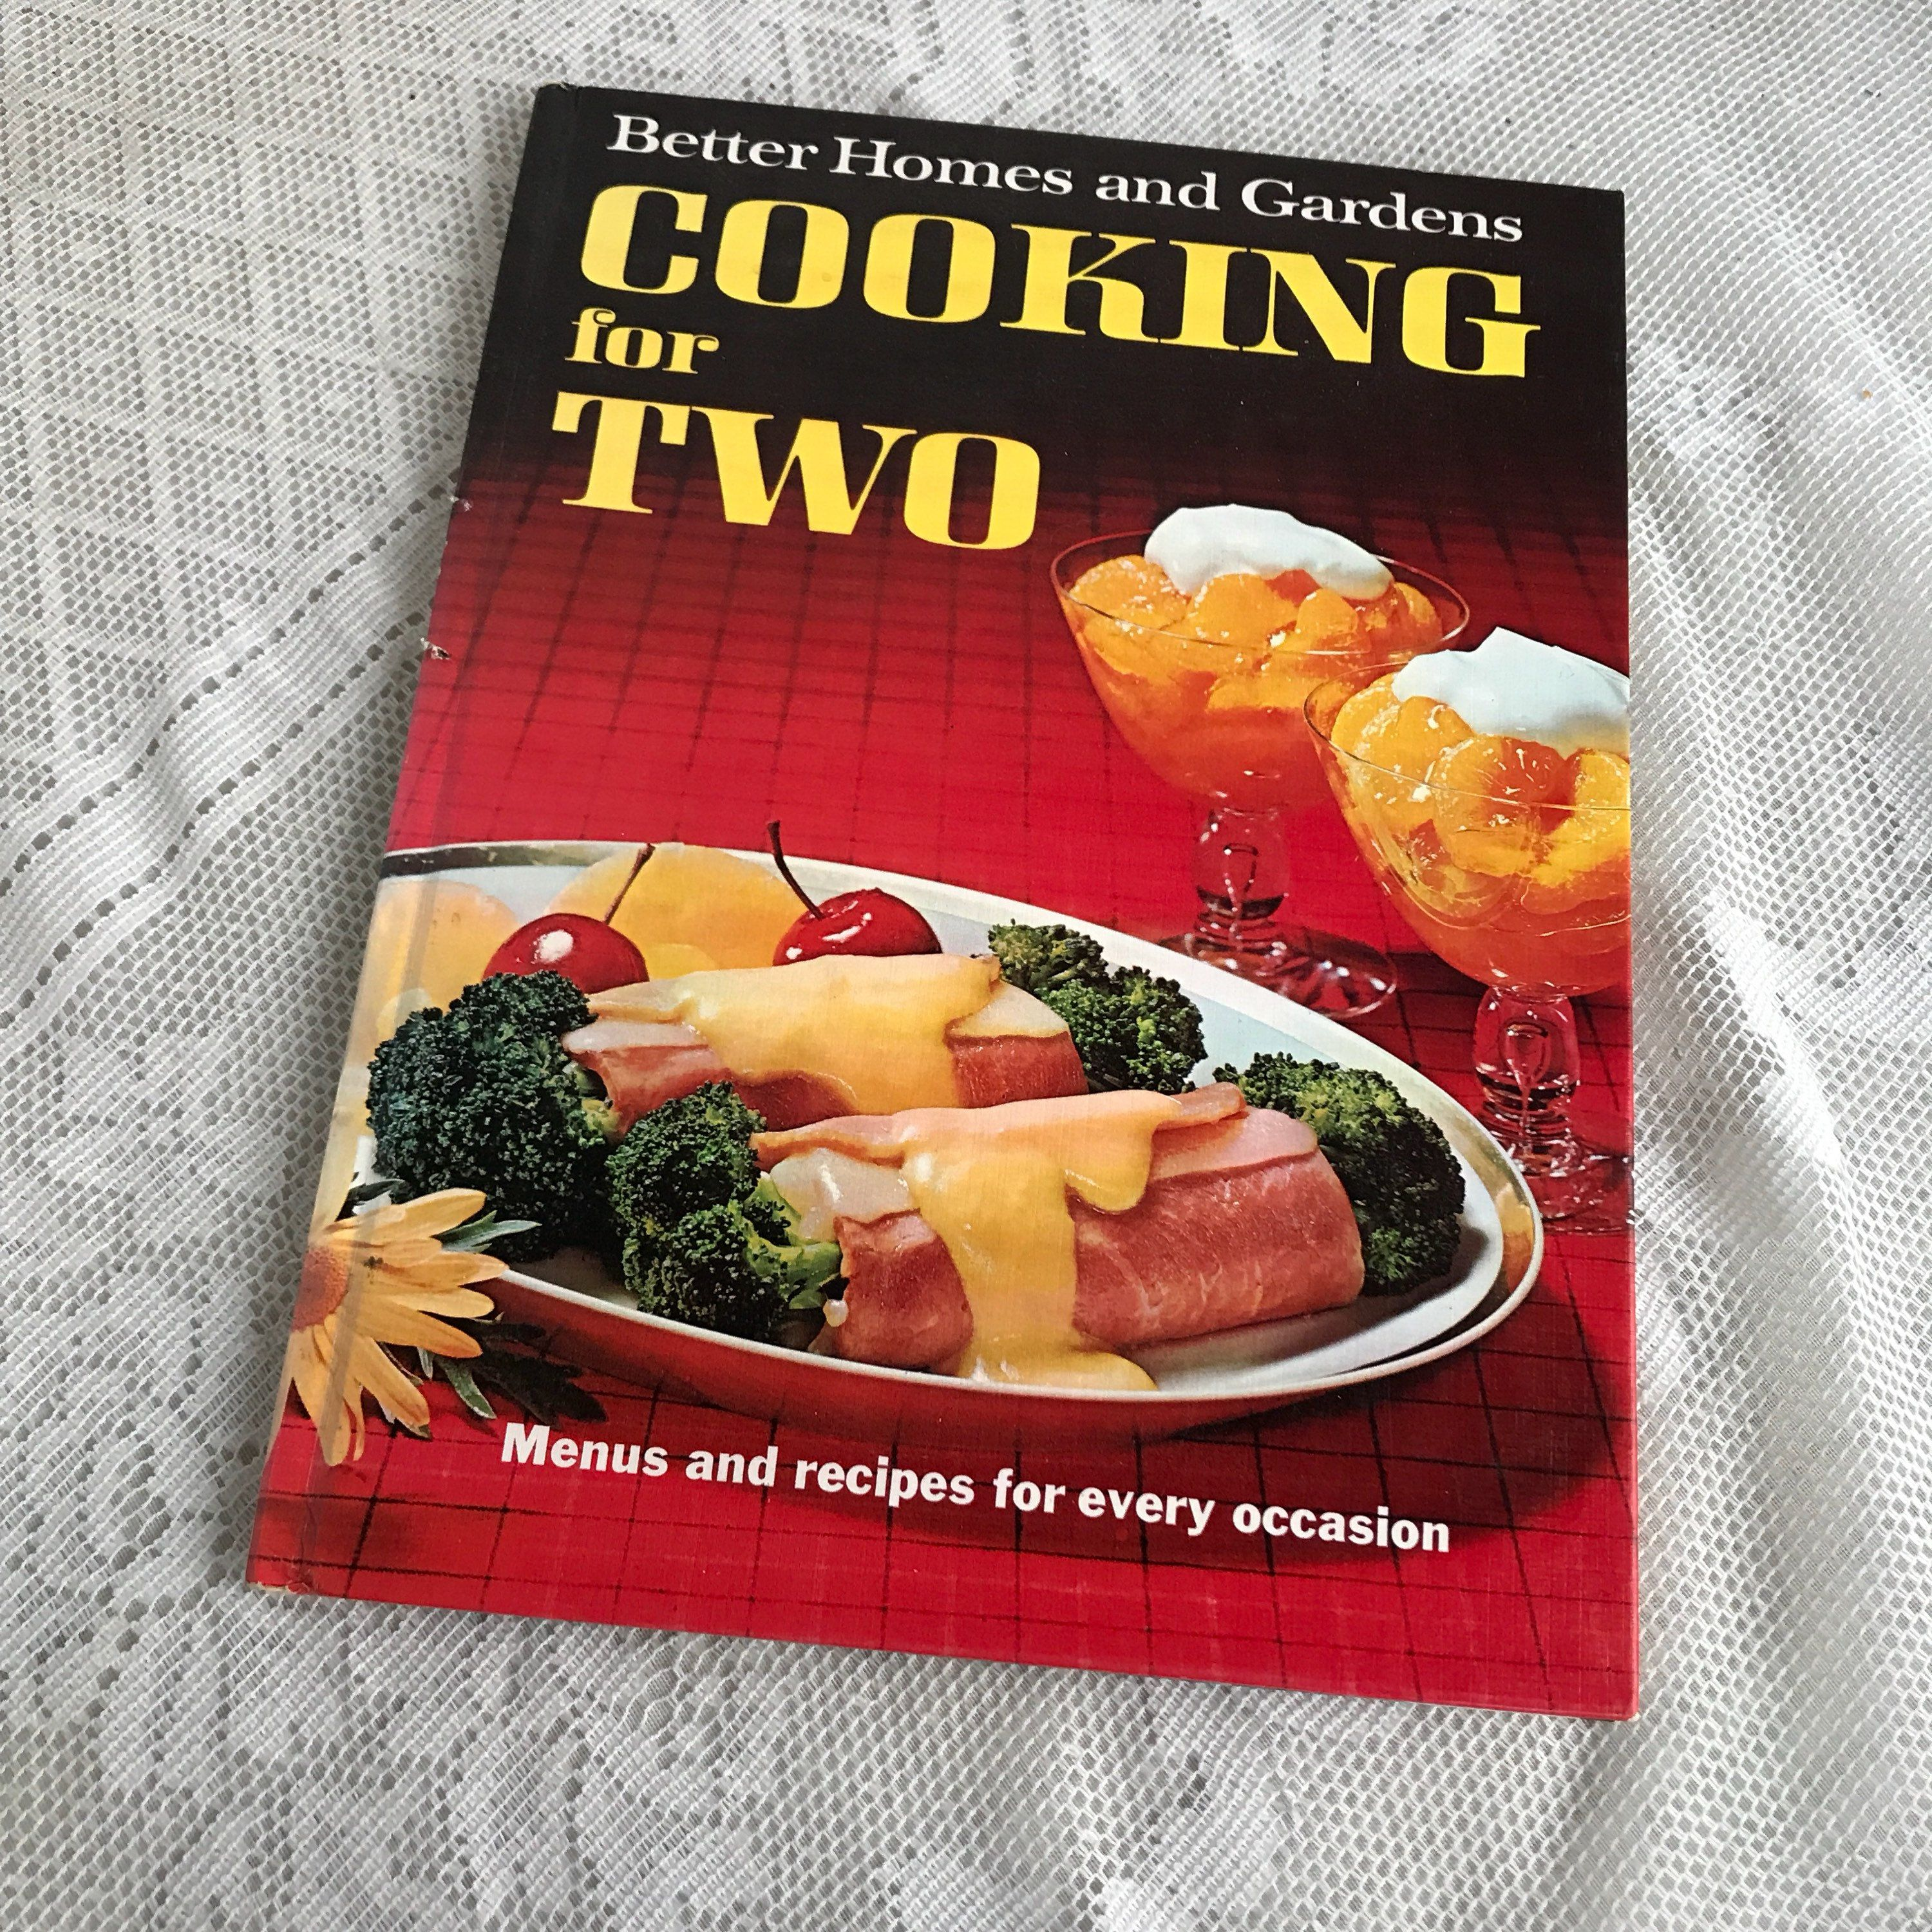 21d5da7bb3d1e8143b97eda7bfd8ca85 - Better Homes And Gardens Cooking For Two Recipes